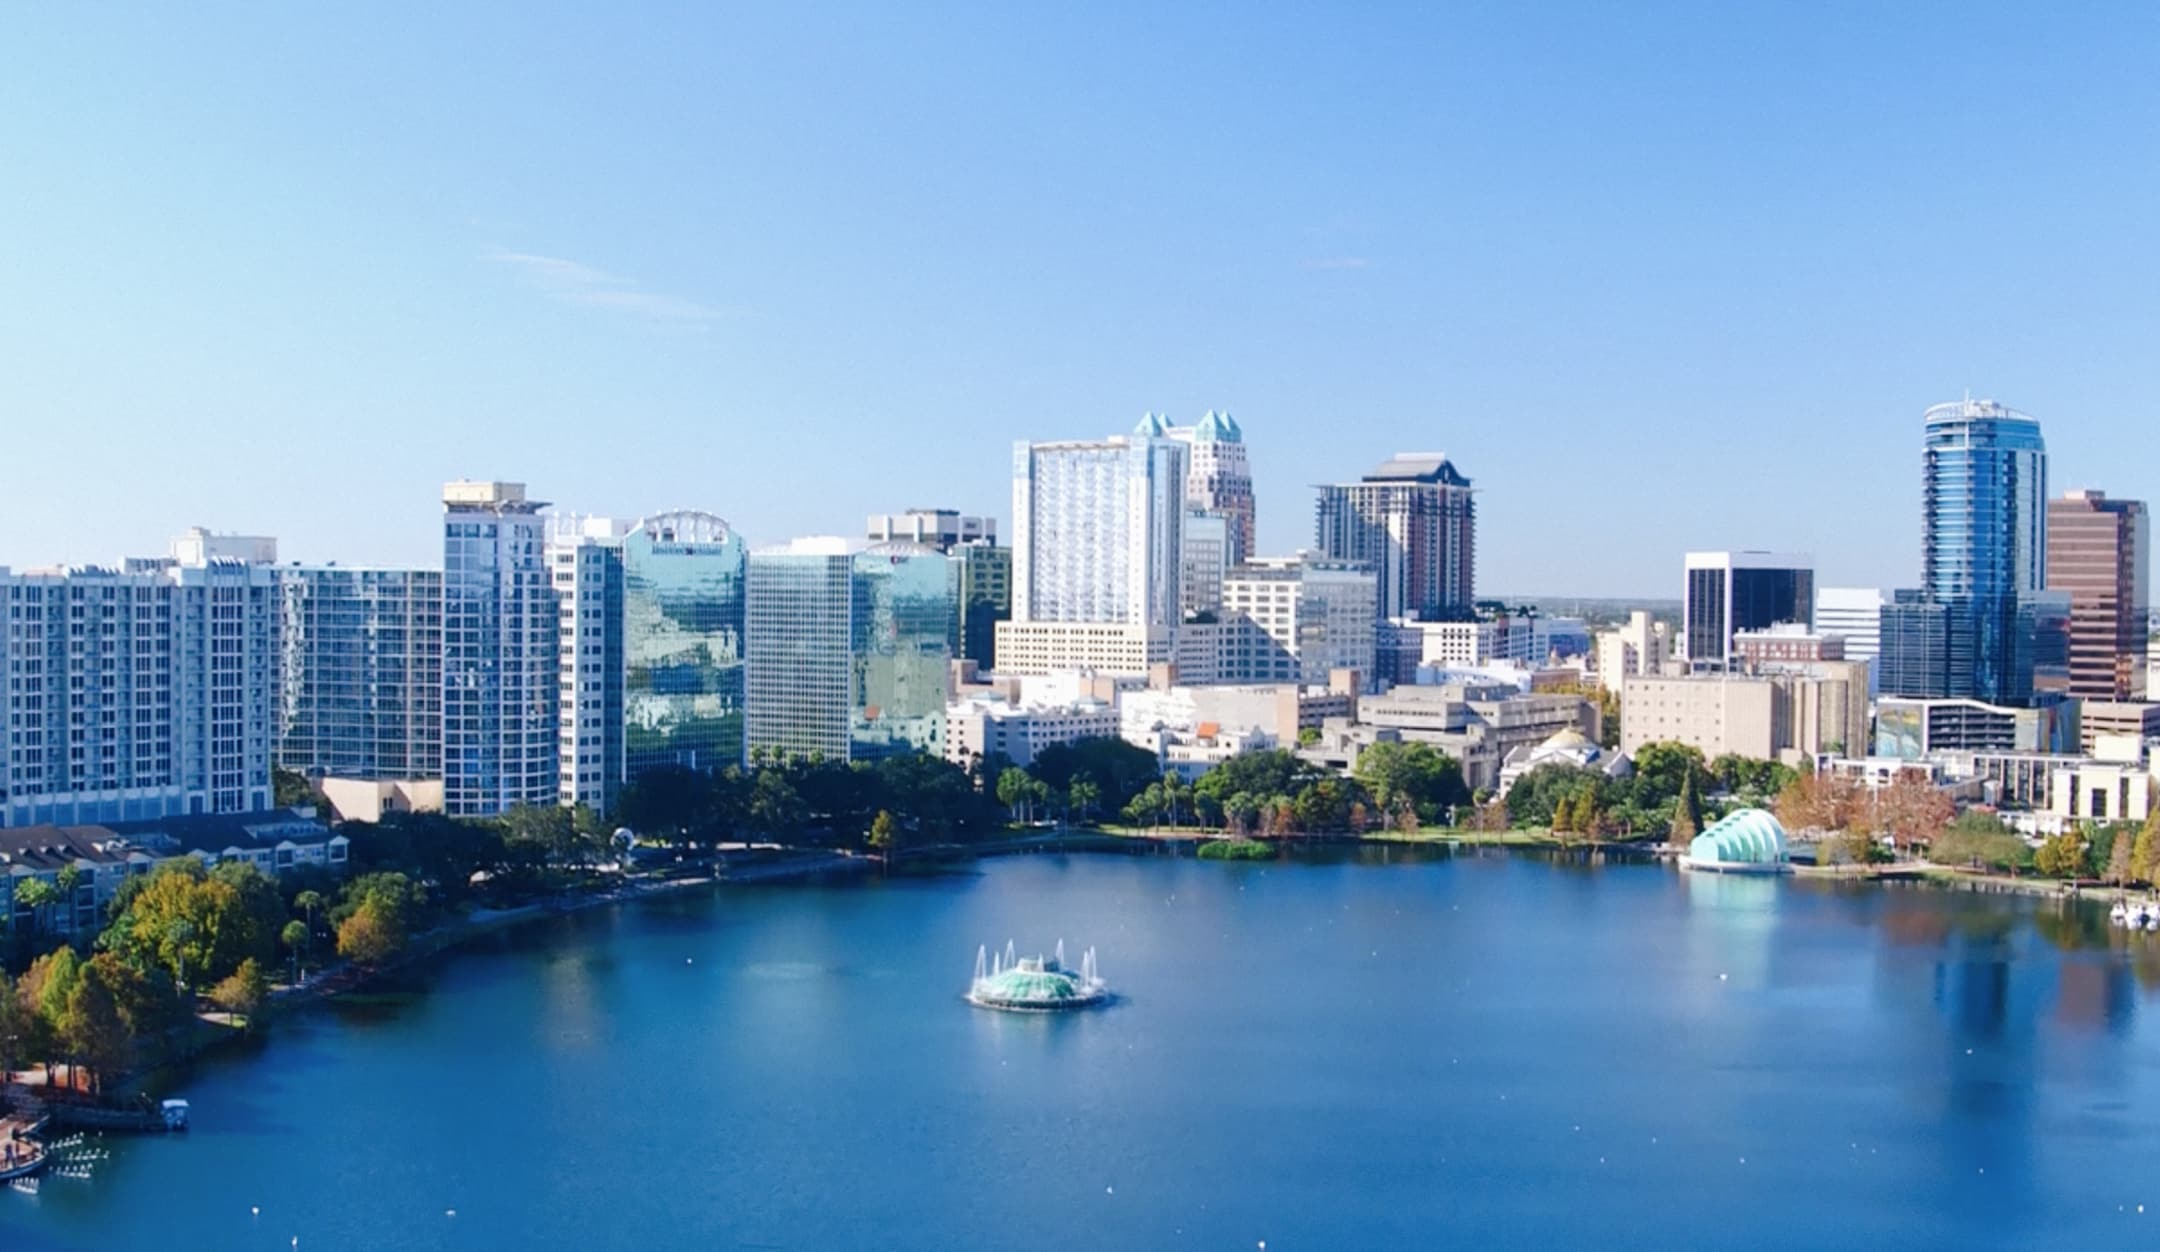 Luxury Apartments For Rent In Altamonte Springs Fl Near Orlando Maa